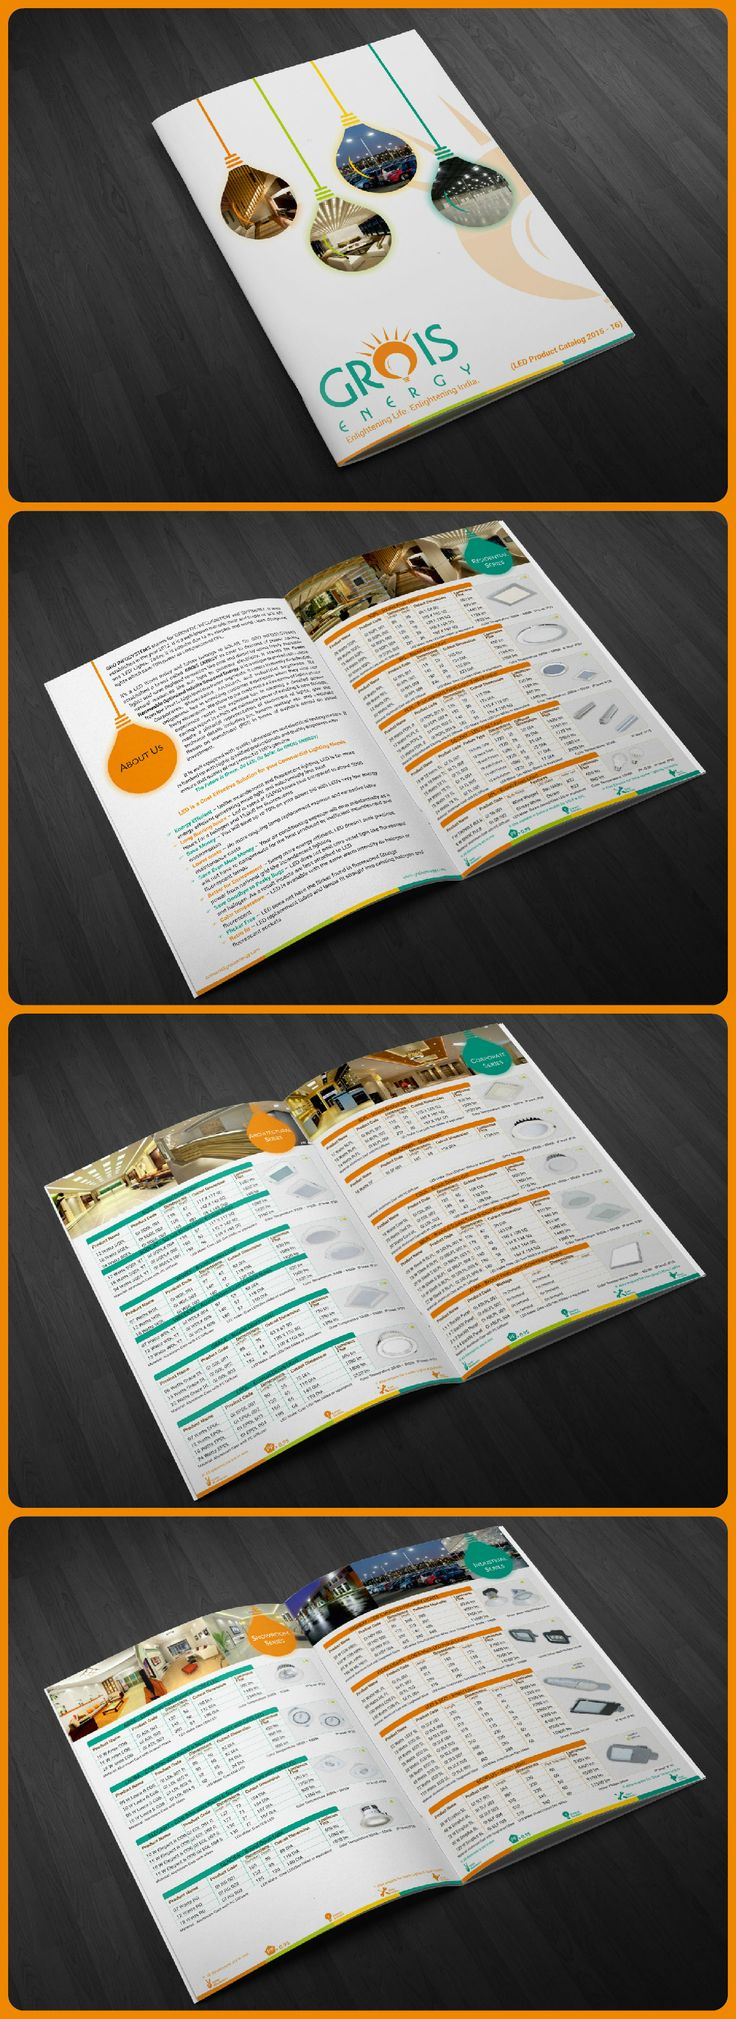 Brochure & Catalog Designing for GROIS ENERGY that stands for Green Renewable Optimized Infinite Source Of Energy.  GROIS ENERGY is a manufacturer of Solar Street Light, Solar Home Lighting Systems, and Solar Lanterns.etc.